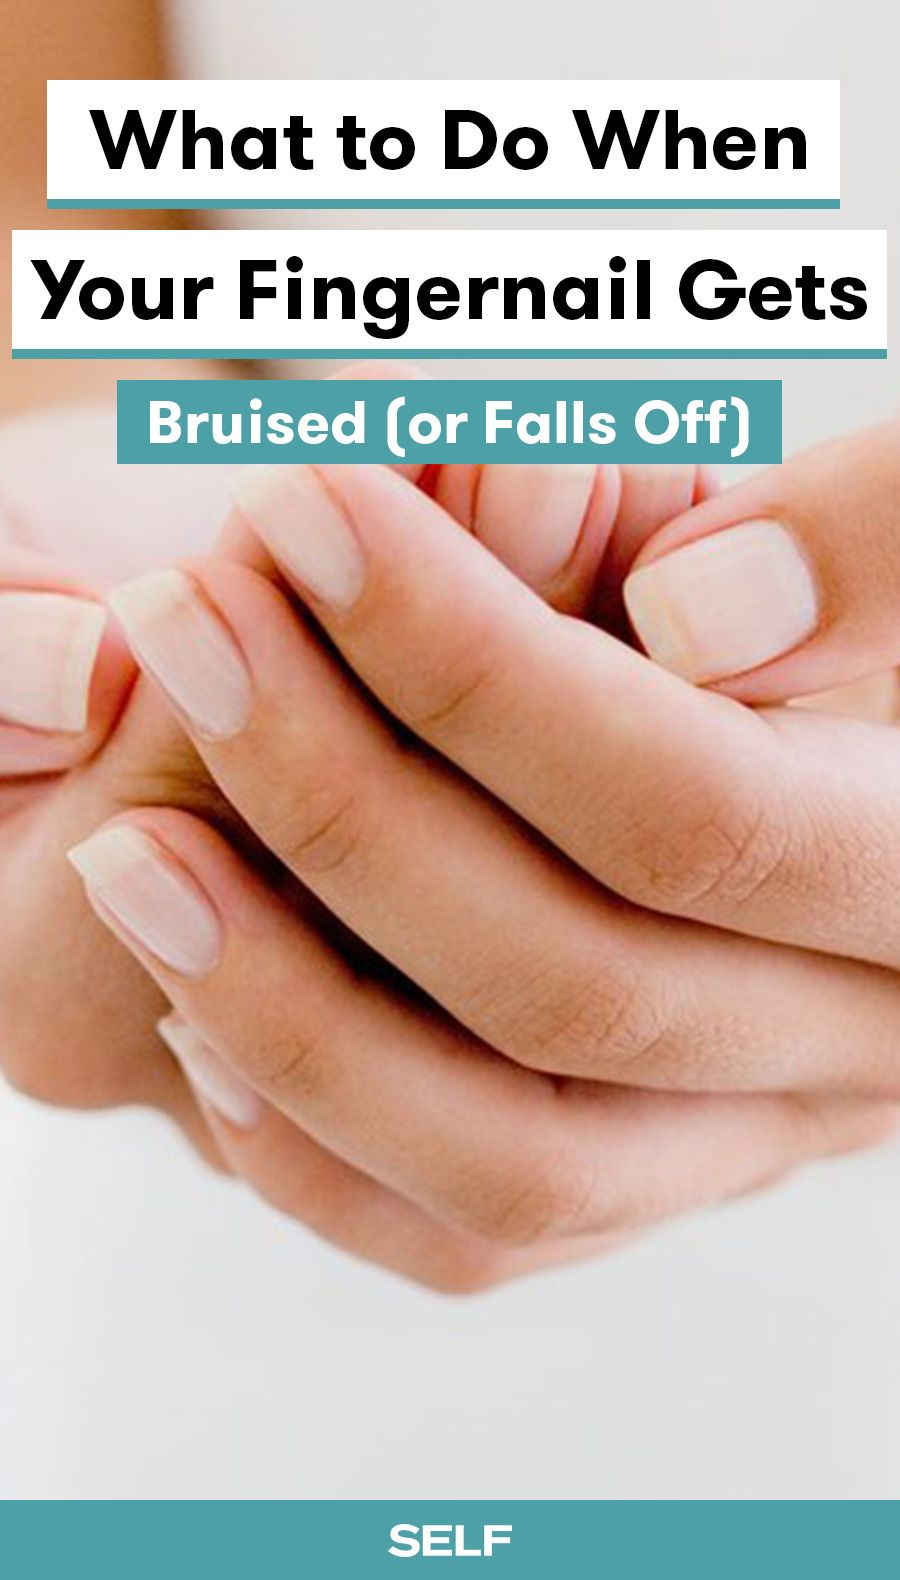 What to Do When Your Fingernail Gets Bruised (or Falls Off